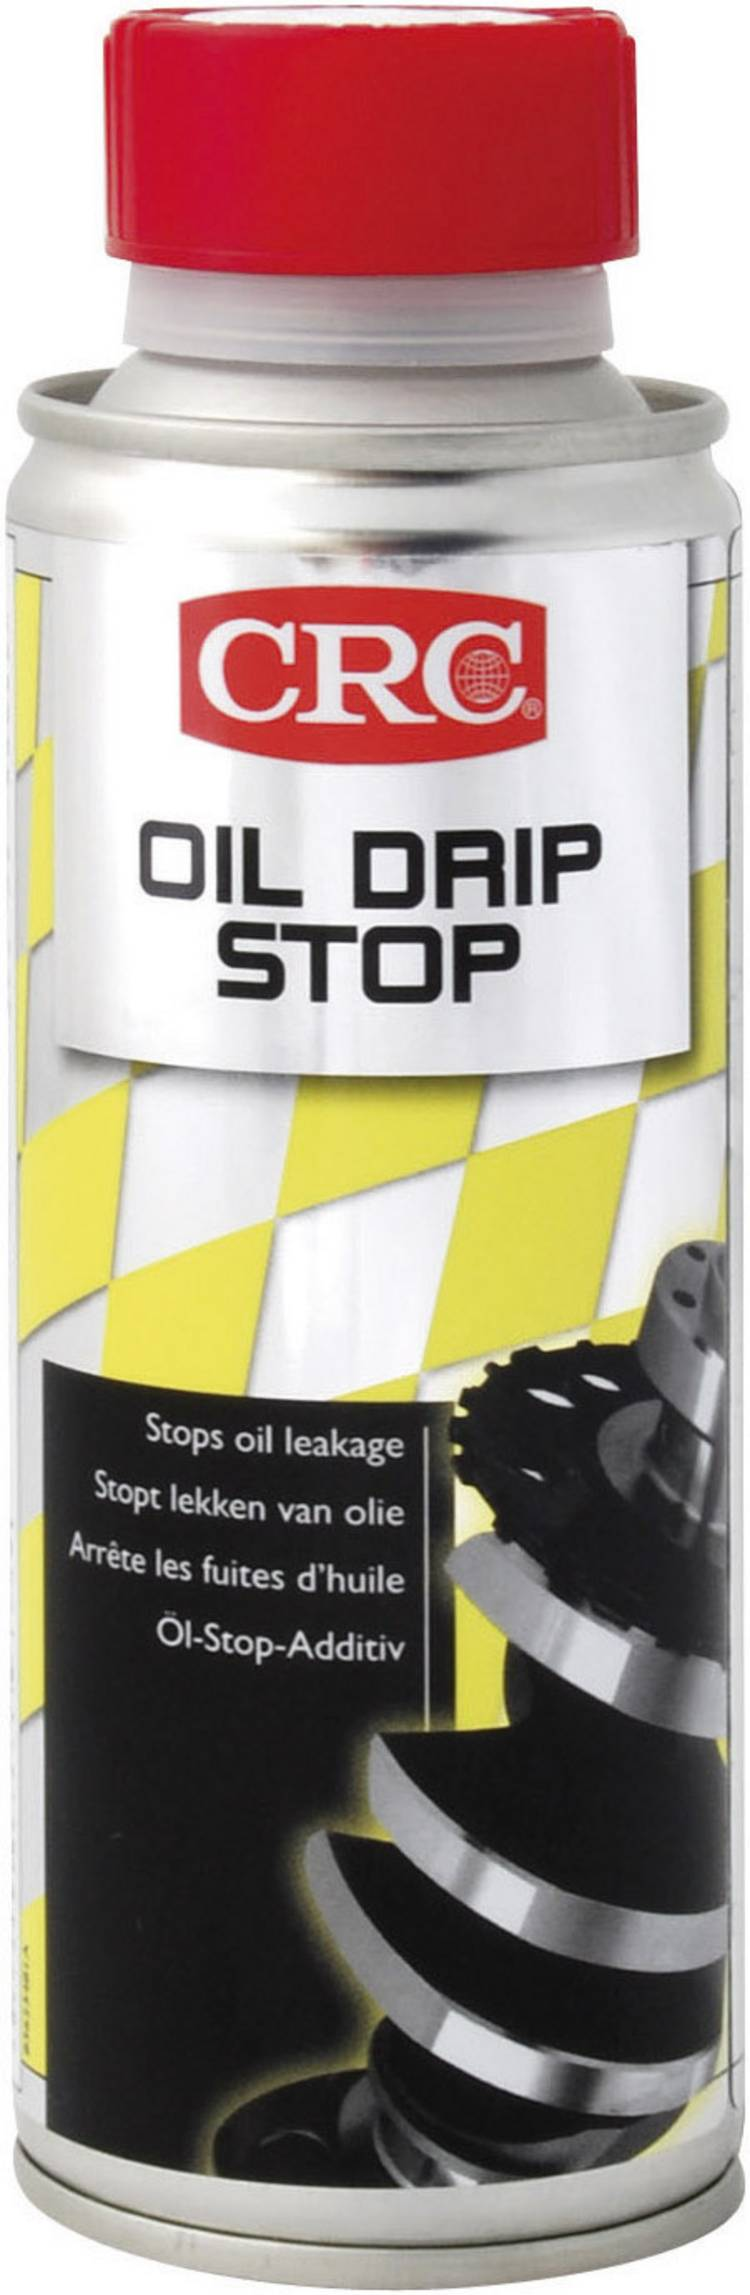 Image of CRC OIL DRIP STOP 32034-AA OIL DRIP STOP olie-stop-toevoeging 200 ml